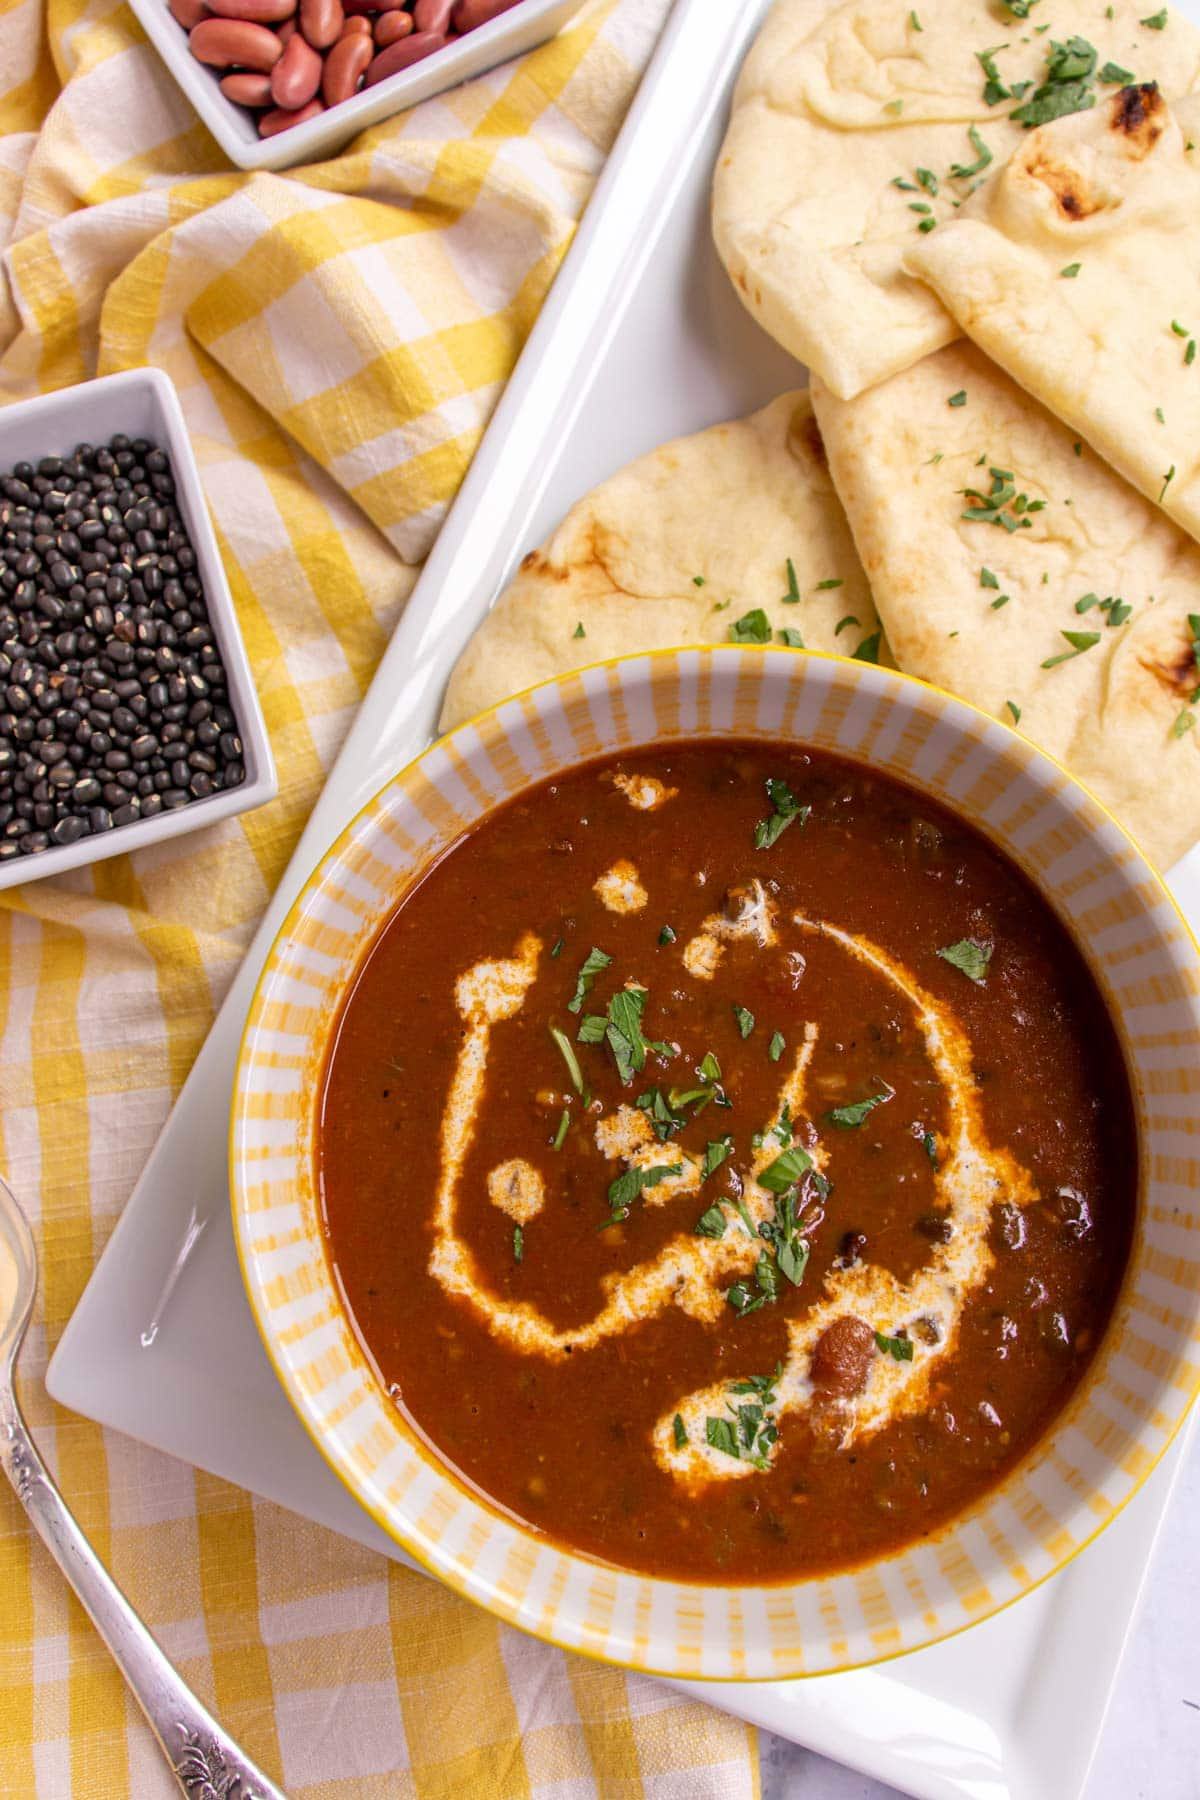 A bowl of dark brown stewed lentils with naan bread and a yellow gingham towel.